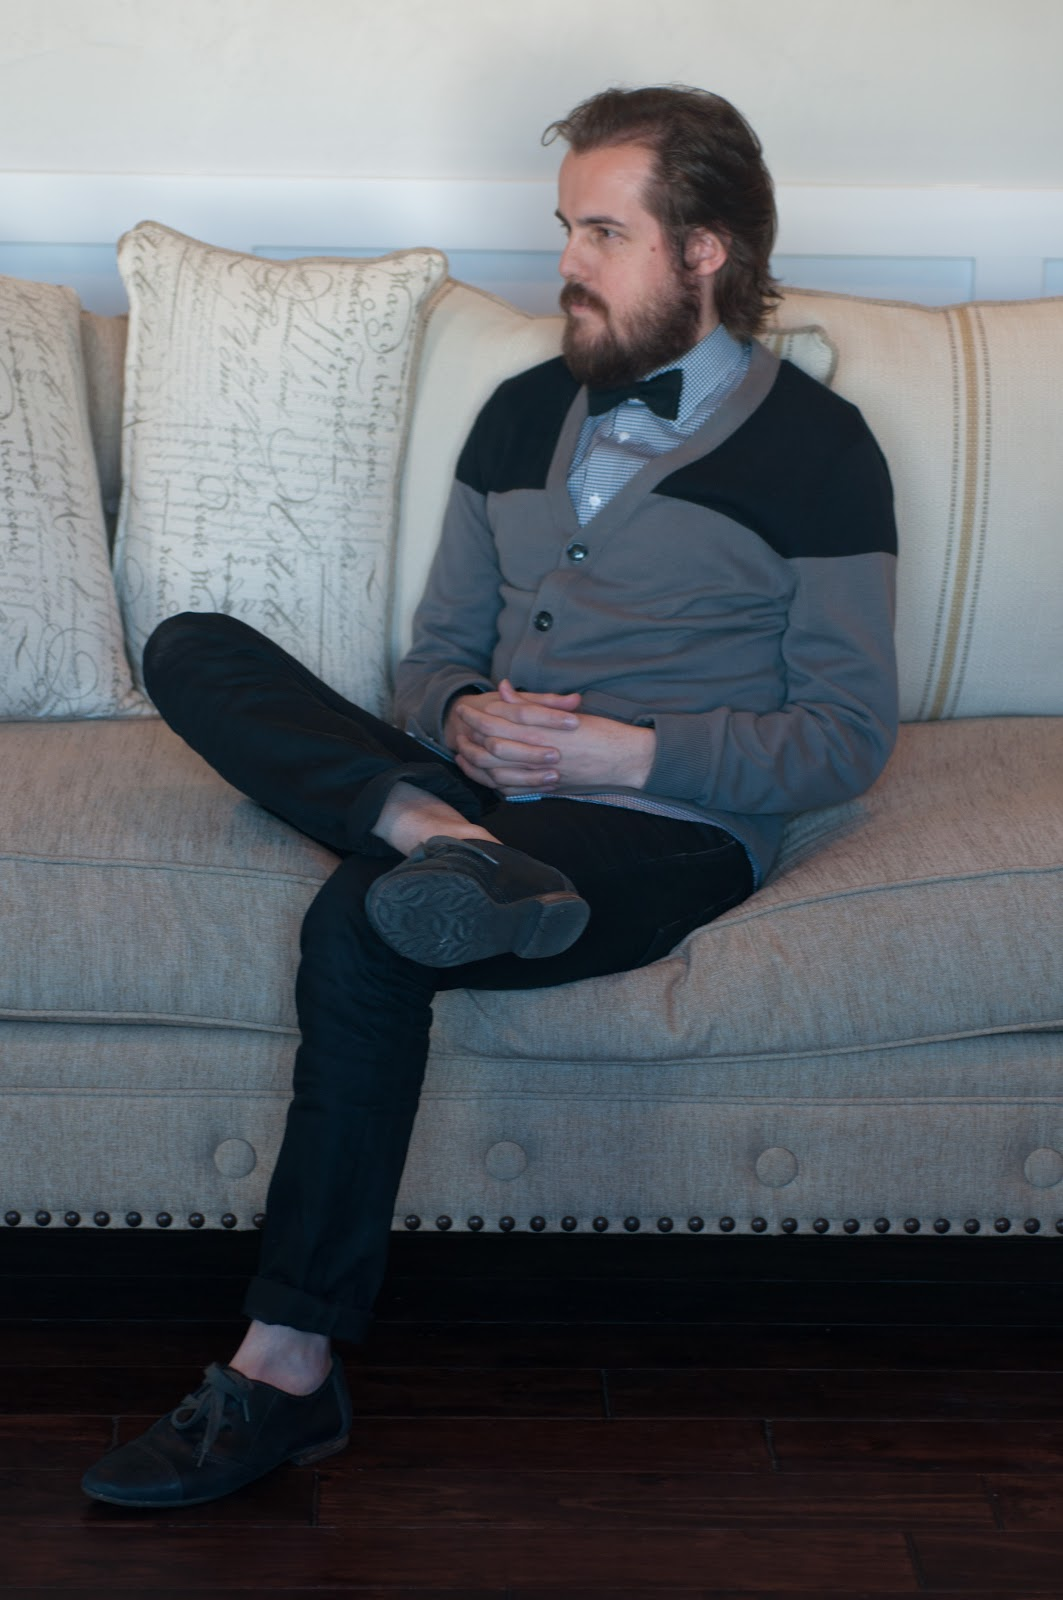 restoration hardware, chesterfield couch, couch, cardigan, mens wear, fashion, mens style, mens beard, beard, 2 tone cardigan, color block, buttons, nordstrom, nordstrom tailored shirt, mens shirt, nordstrom shirt, all saints, all saints mens jeans, all saints jeans, timex, timex watch, fashion, fashion blogger, mens unique fashion, black and white trend, black and white, beard, mens beard, bible beard, oxford, oxford shoes, nordstrom oxfords,